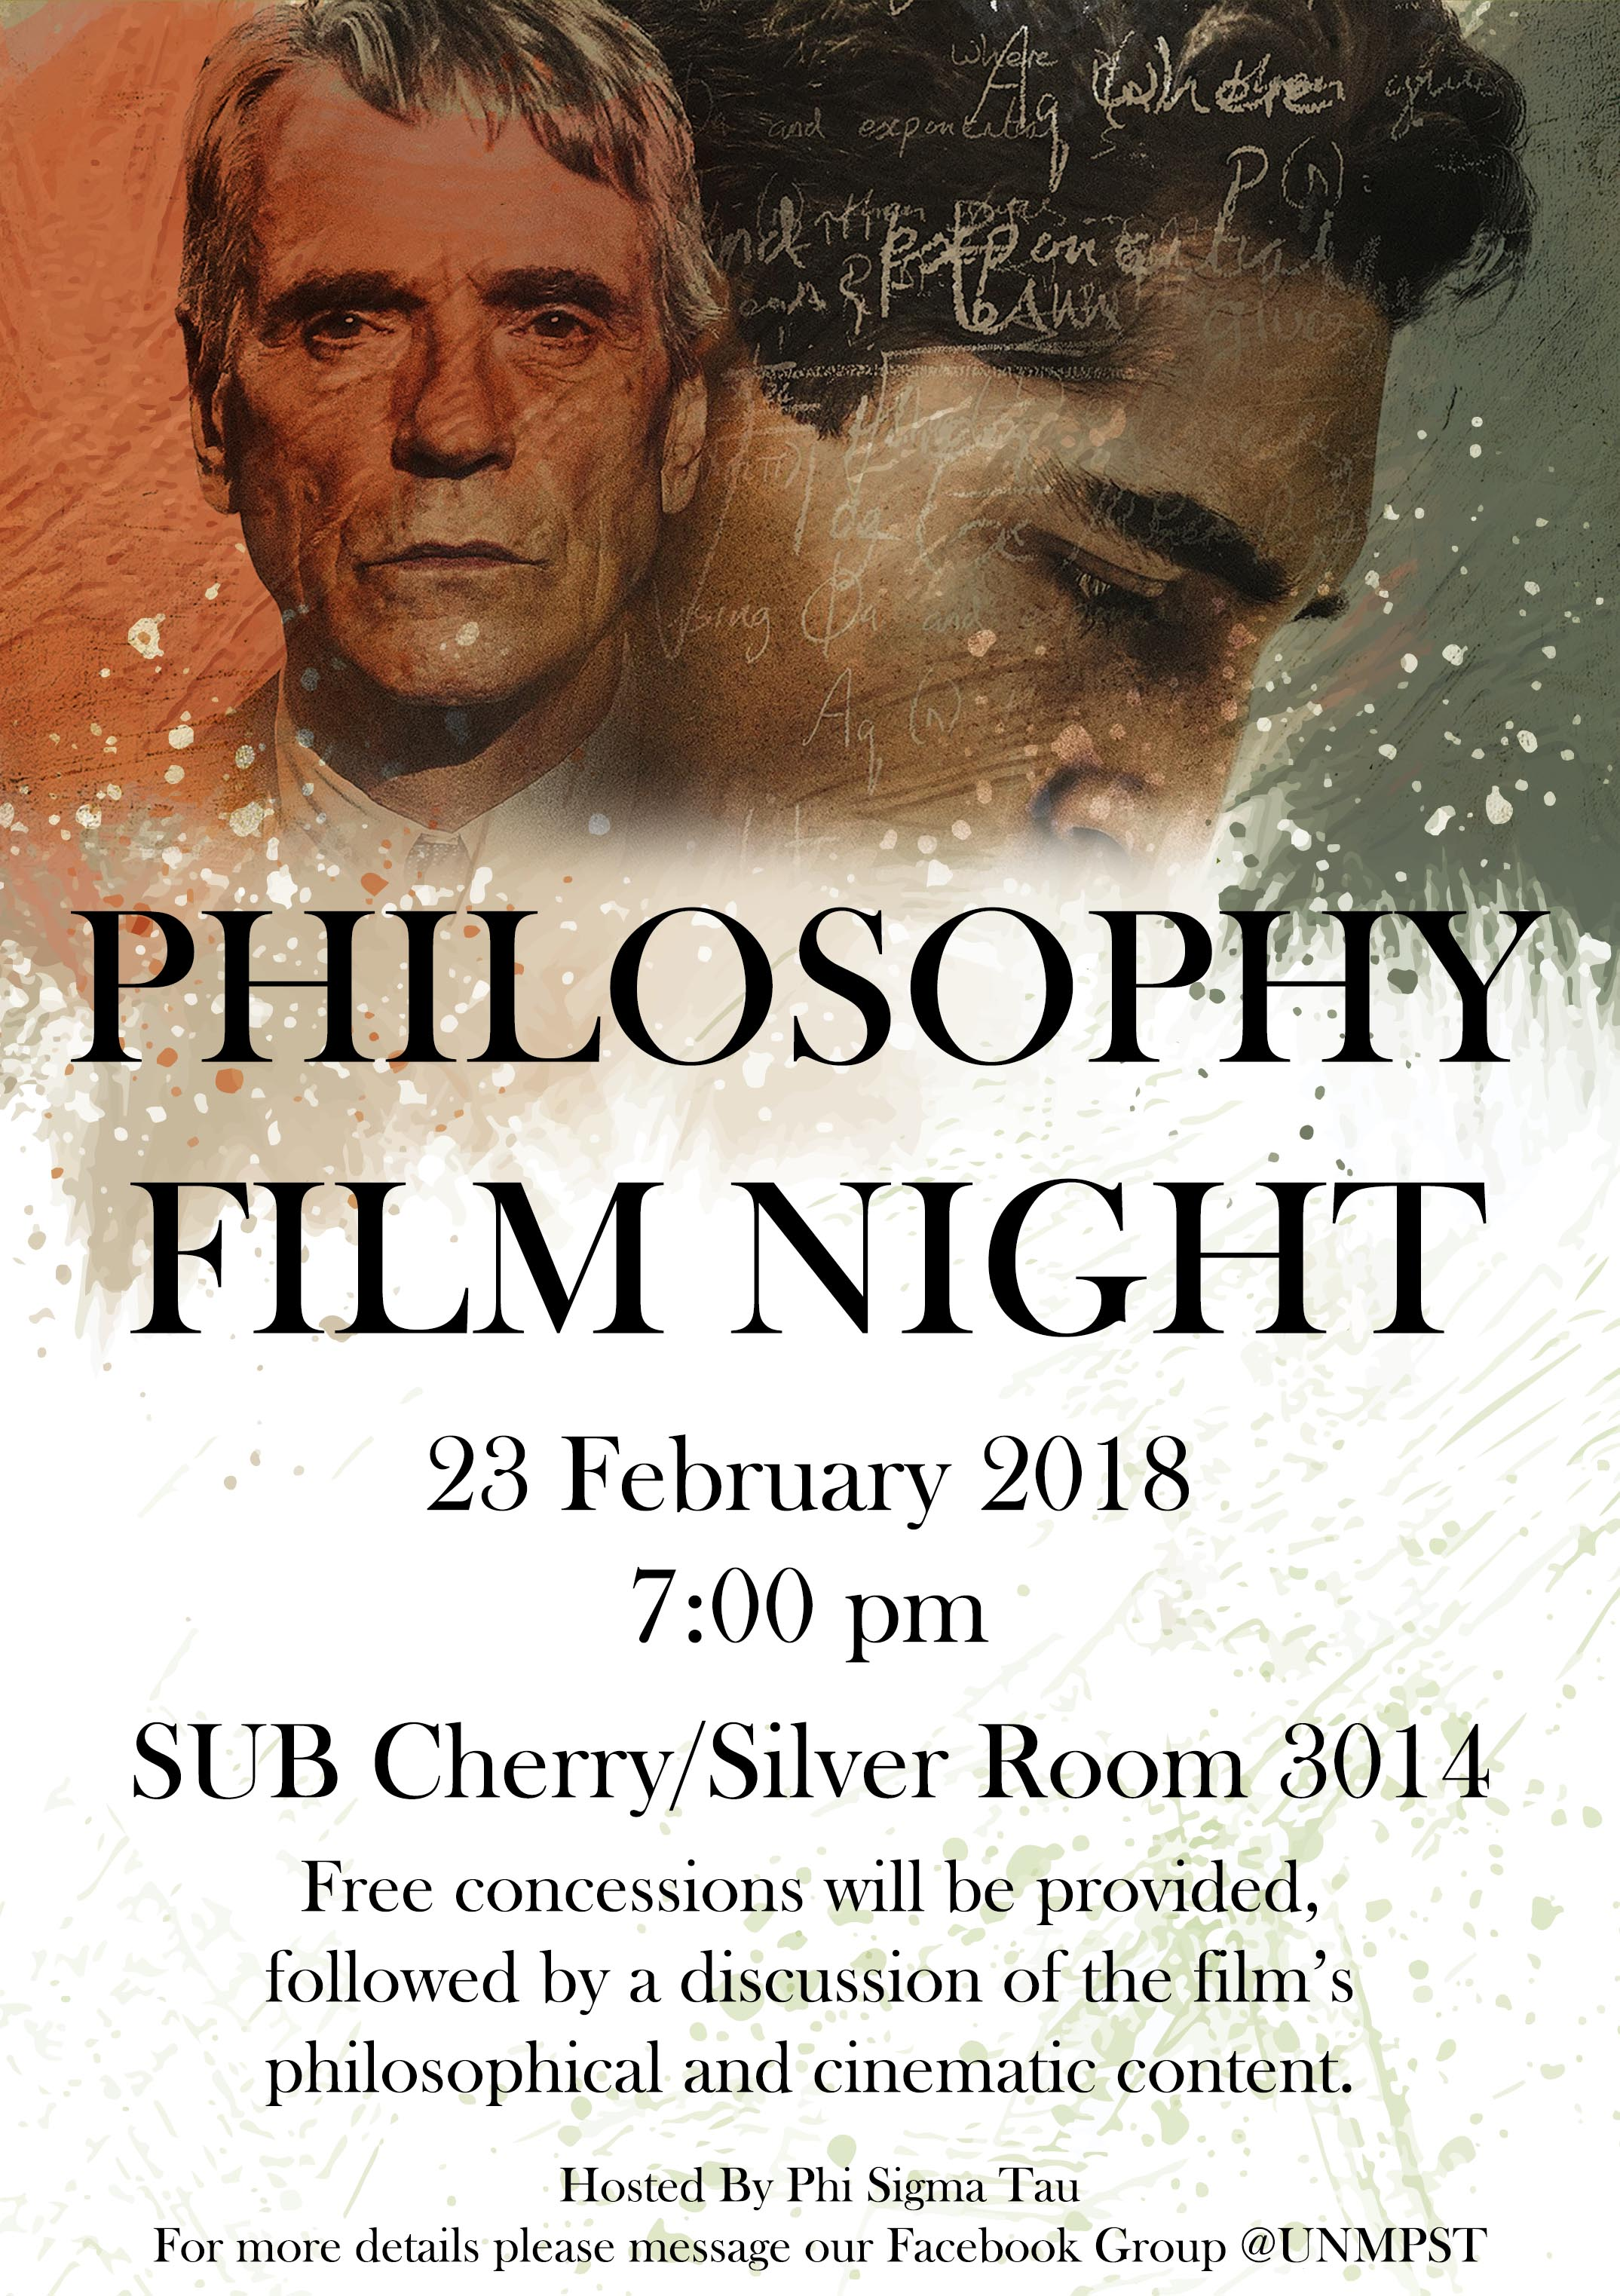 Philosophy Film Night Flyer